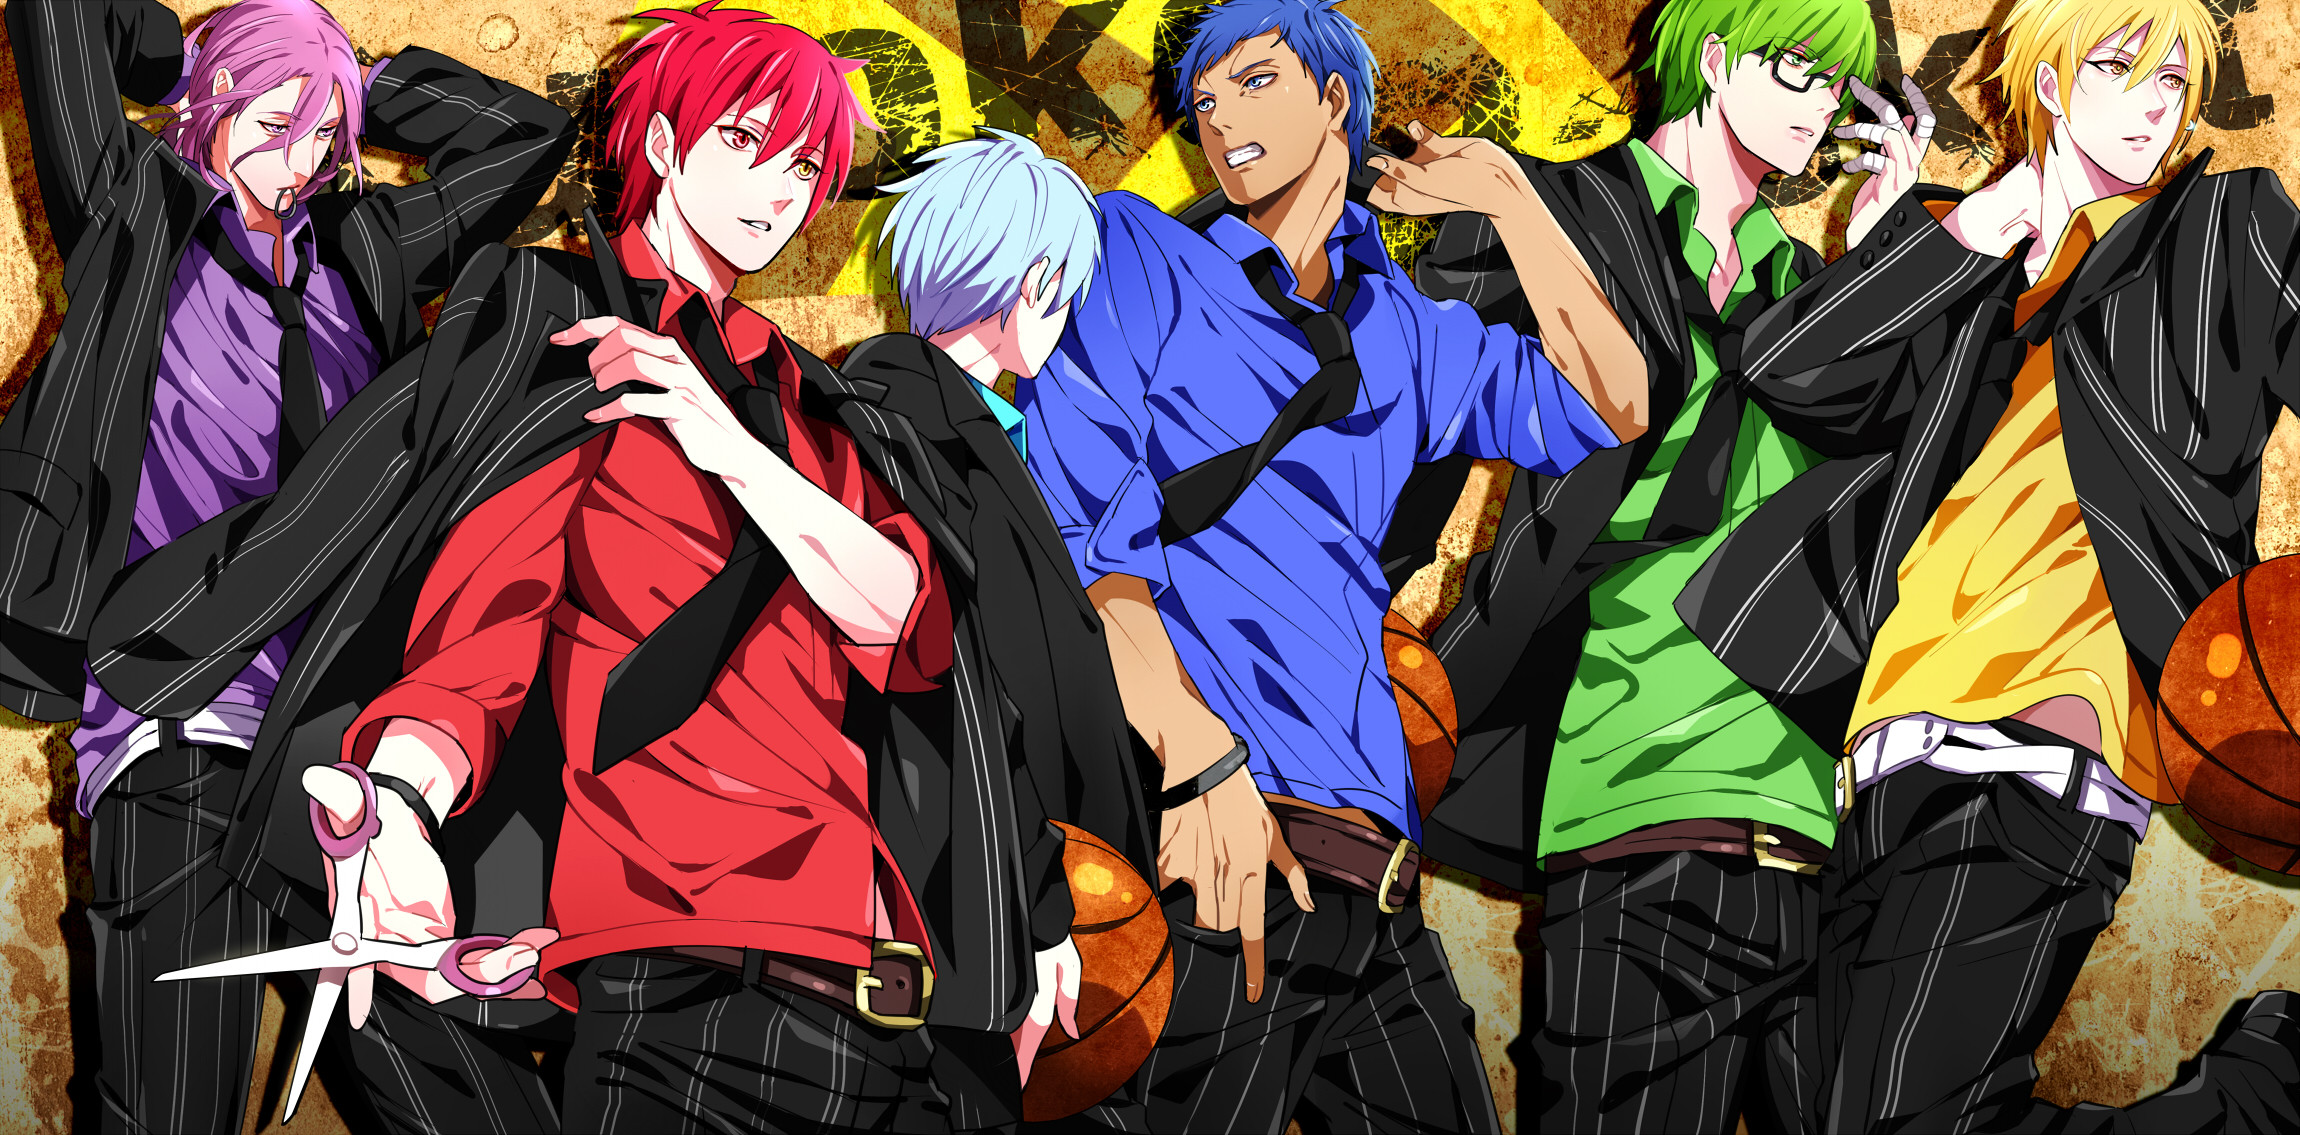 2300x1135 Kuroko's Basketball Manga 29 Free Hd Wallpaper. Kuroko's Basketball Manga  29 Free Hd Wallpaper